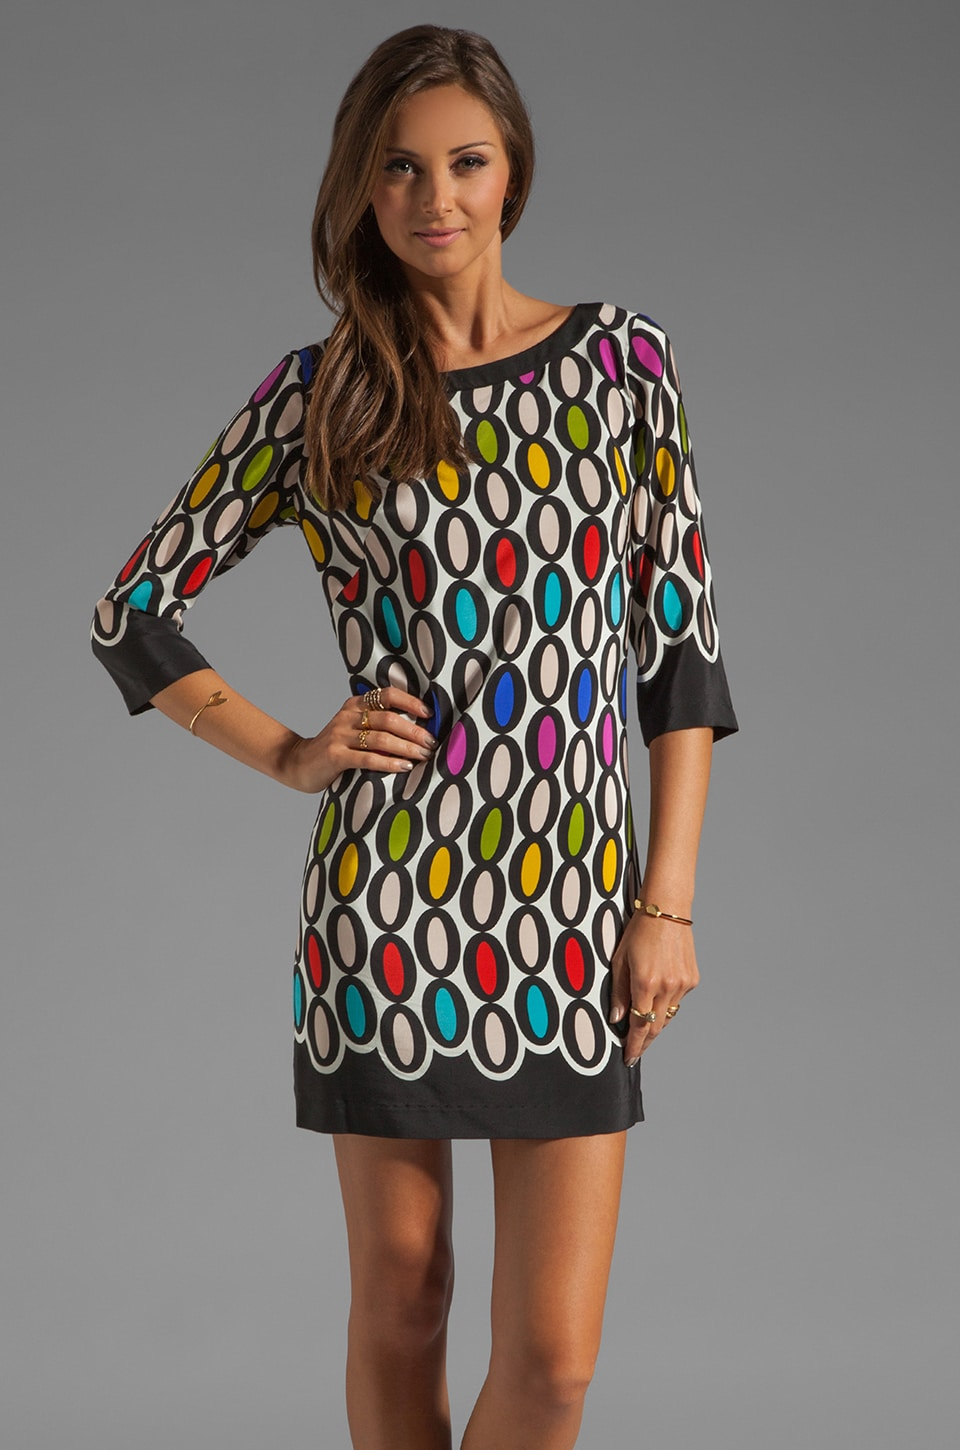 Trina Turk Double Oval Ronson Dress in Multi